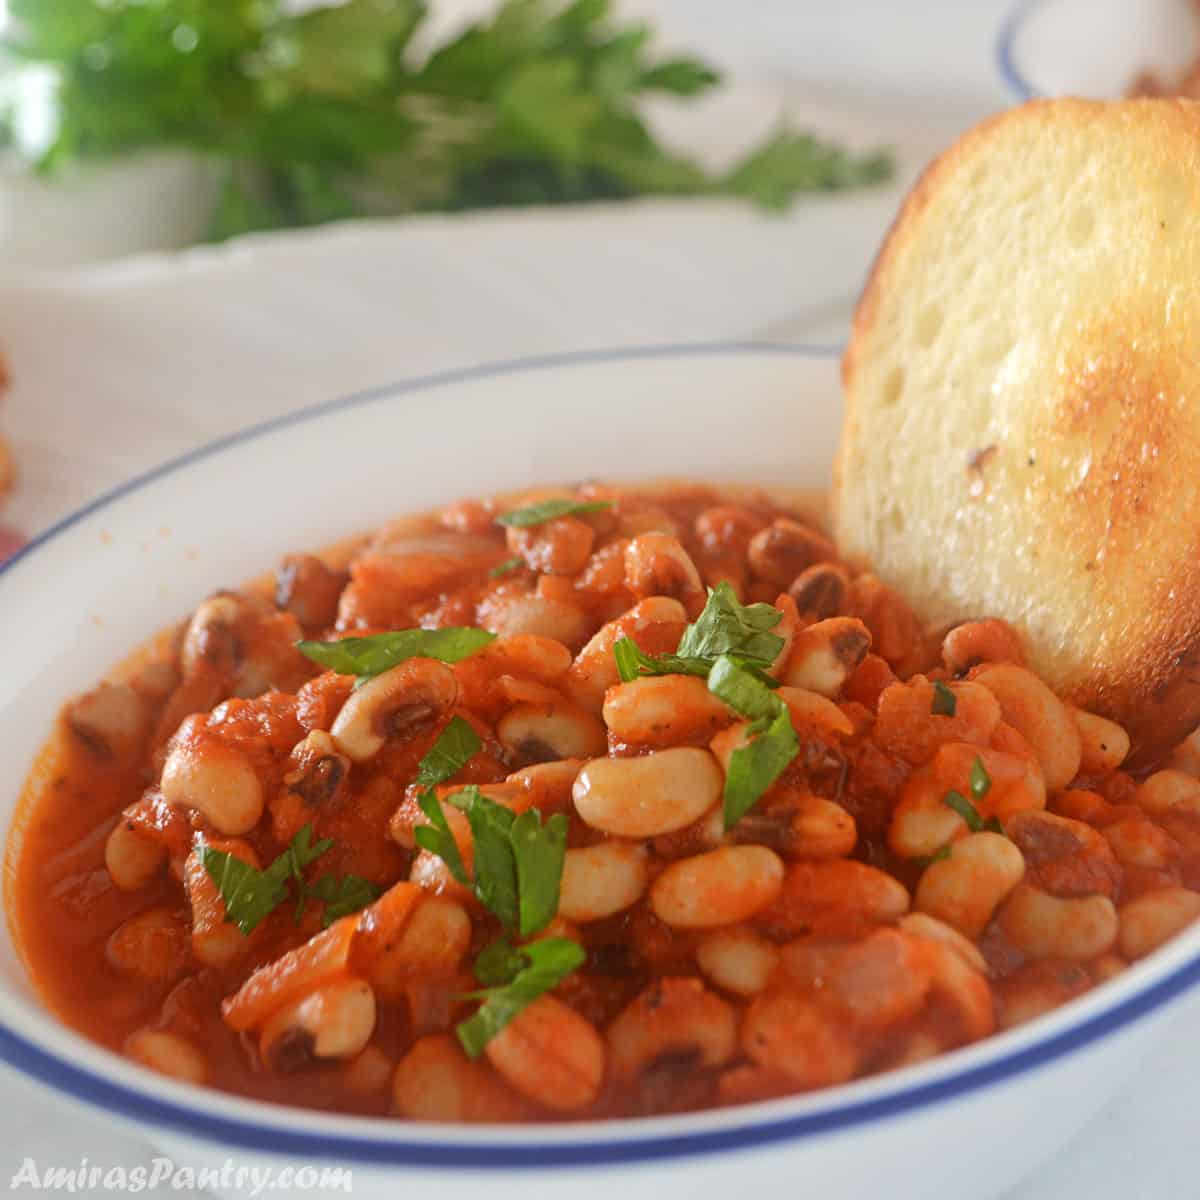 Black eyed peas stew in a white bowl with a dark blue rim. A piece of bread is in the bowl.